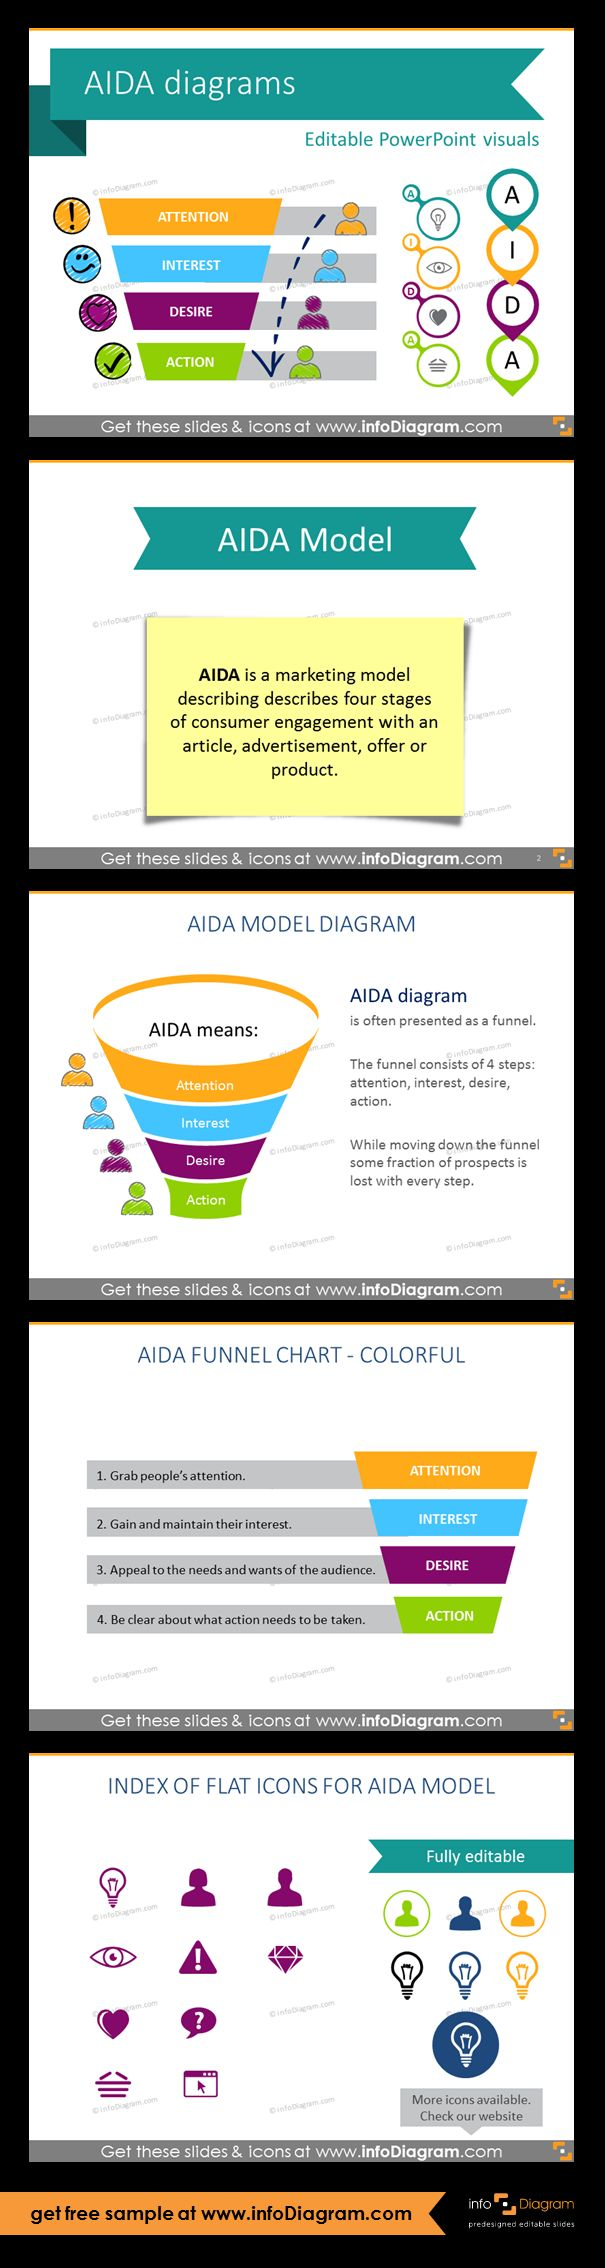 Below are two different file formats of the superman logo in a beveled - Fully Editable Vector Shapes By Using Built In Powerpoint Tools Vector Format Definition Of Aida Model Usage In Marketing Strategy Or Advertisement